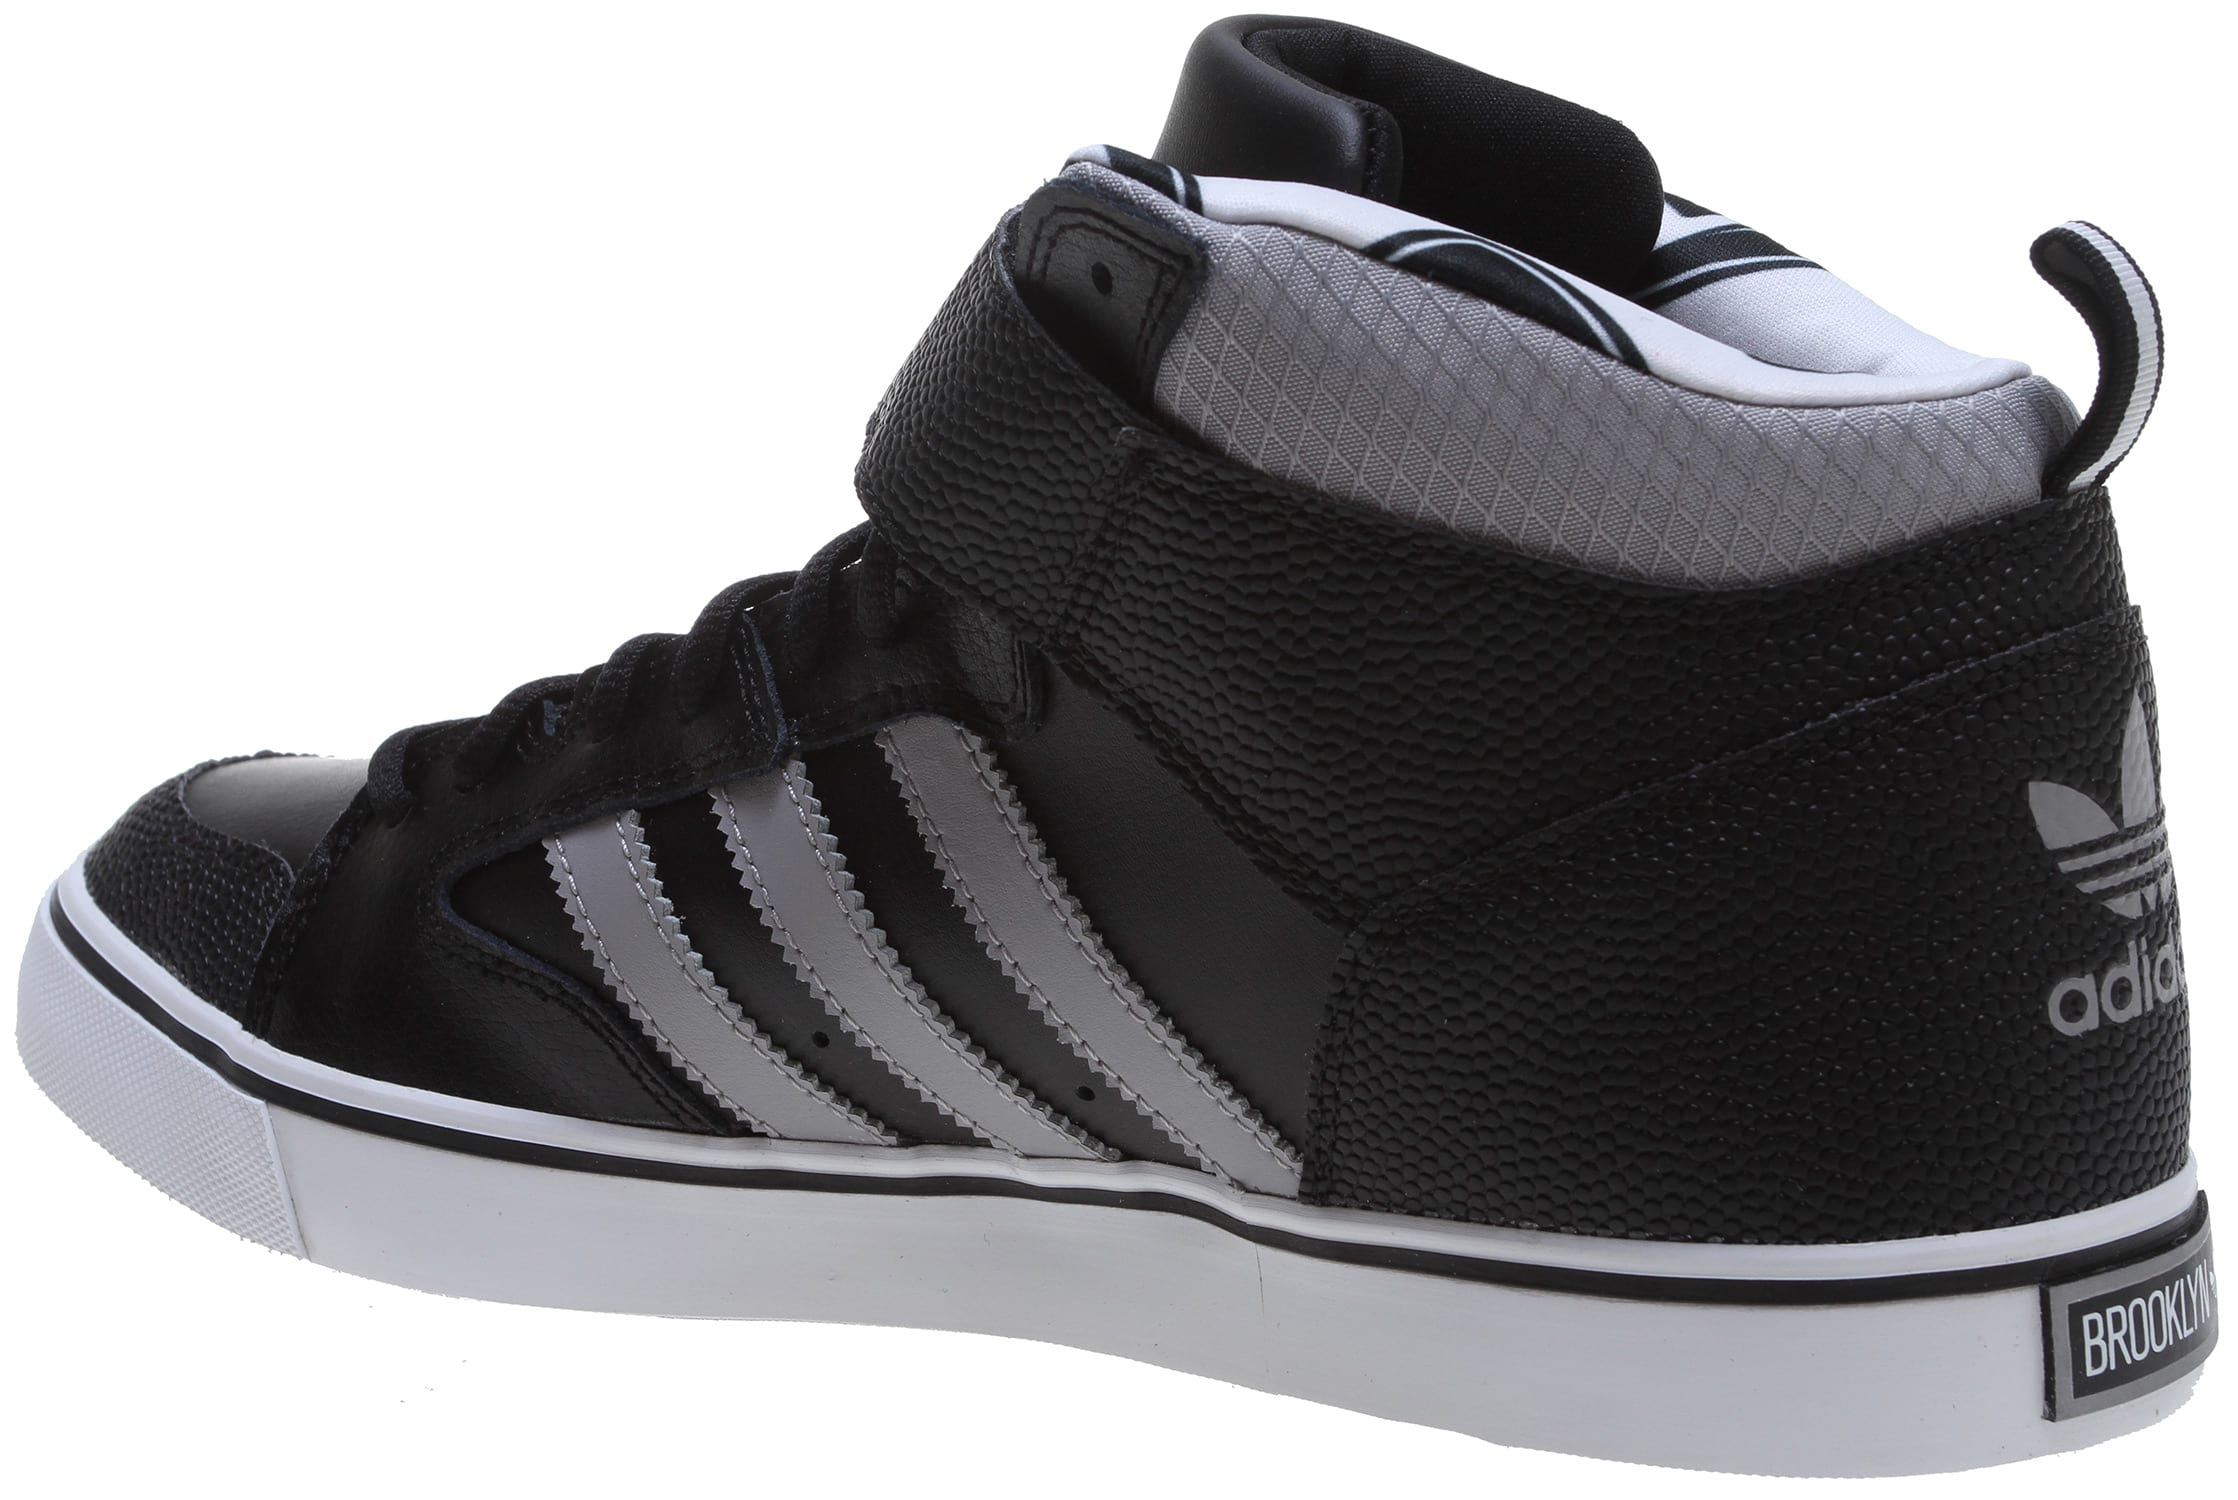 on sale adidas varial ii mid nba skate shoes up to 50 off. Black Bedroom Furniture Sets. Home Design Ideas